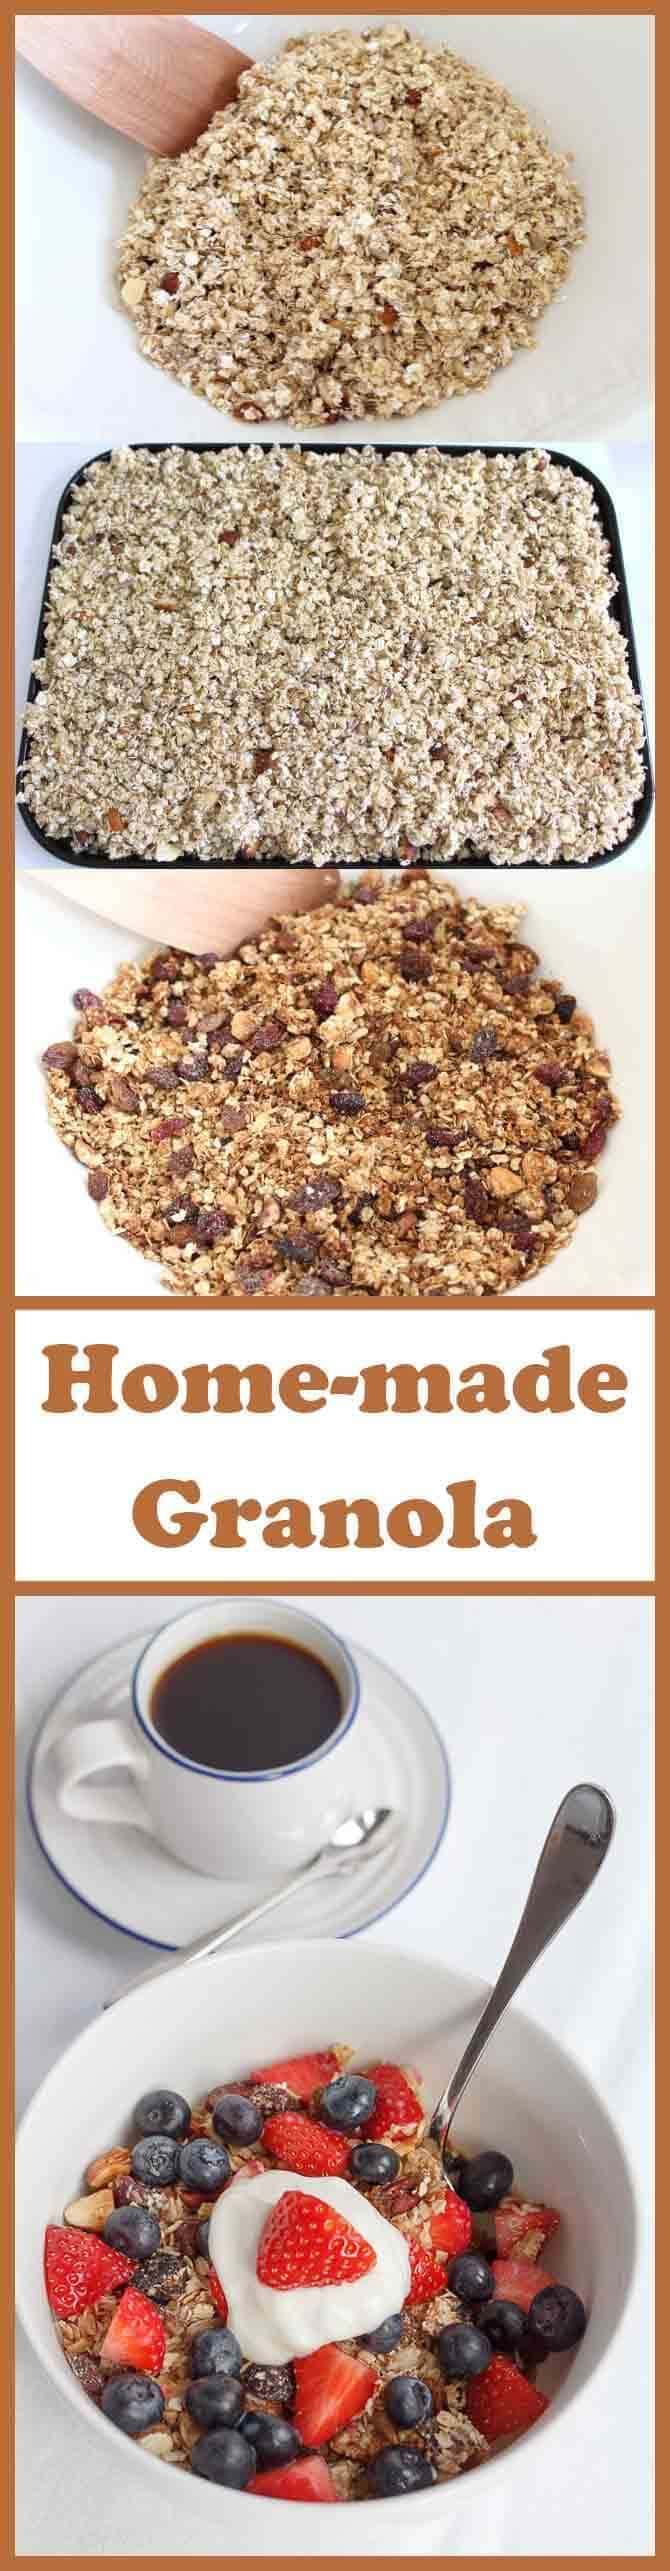 This healthy home-made granola is so easy to make. There's only 222 calories per portion and with 8 portions there's plenty to last you all week. It's delicious with skimmed milk or Greek yogurt, topped with strawberries or blueberries!